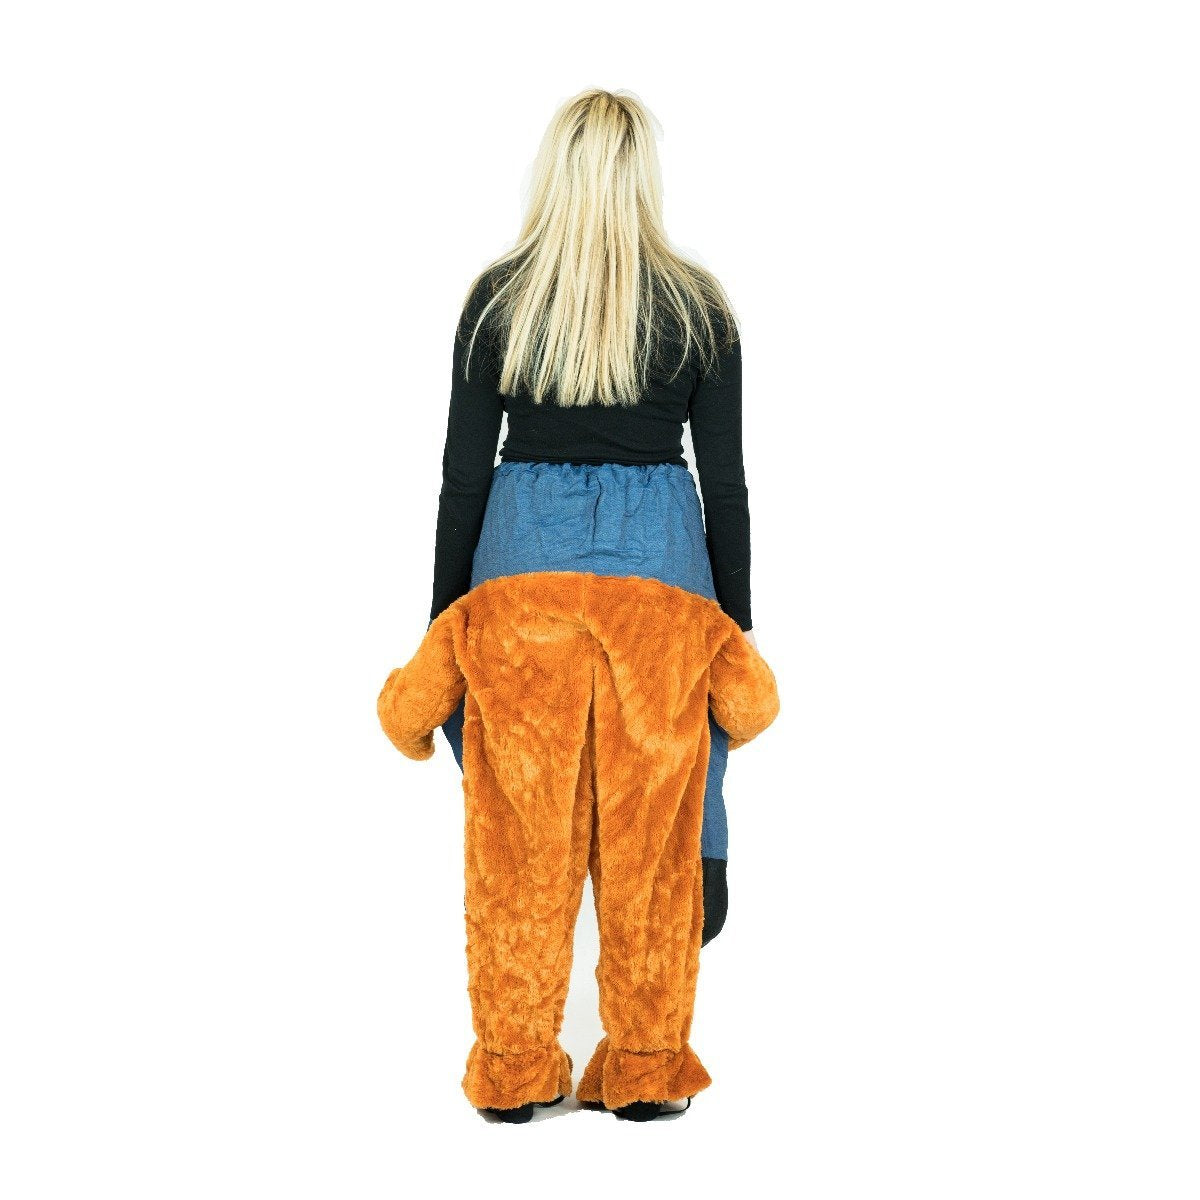 Bodysocks - Piggyback Bear Costume